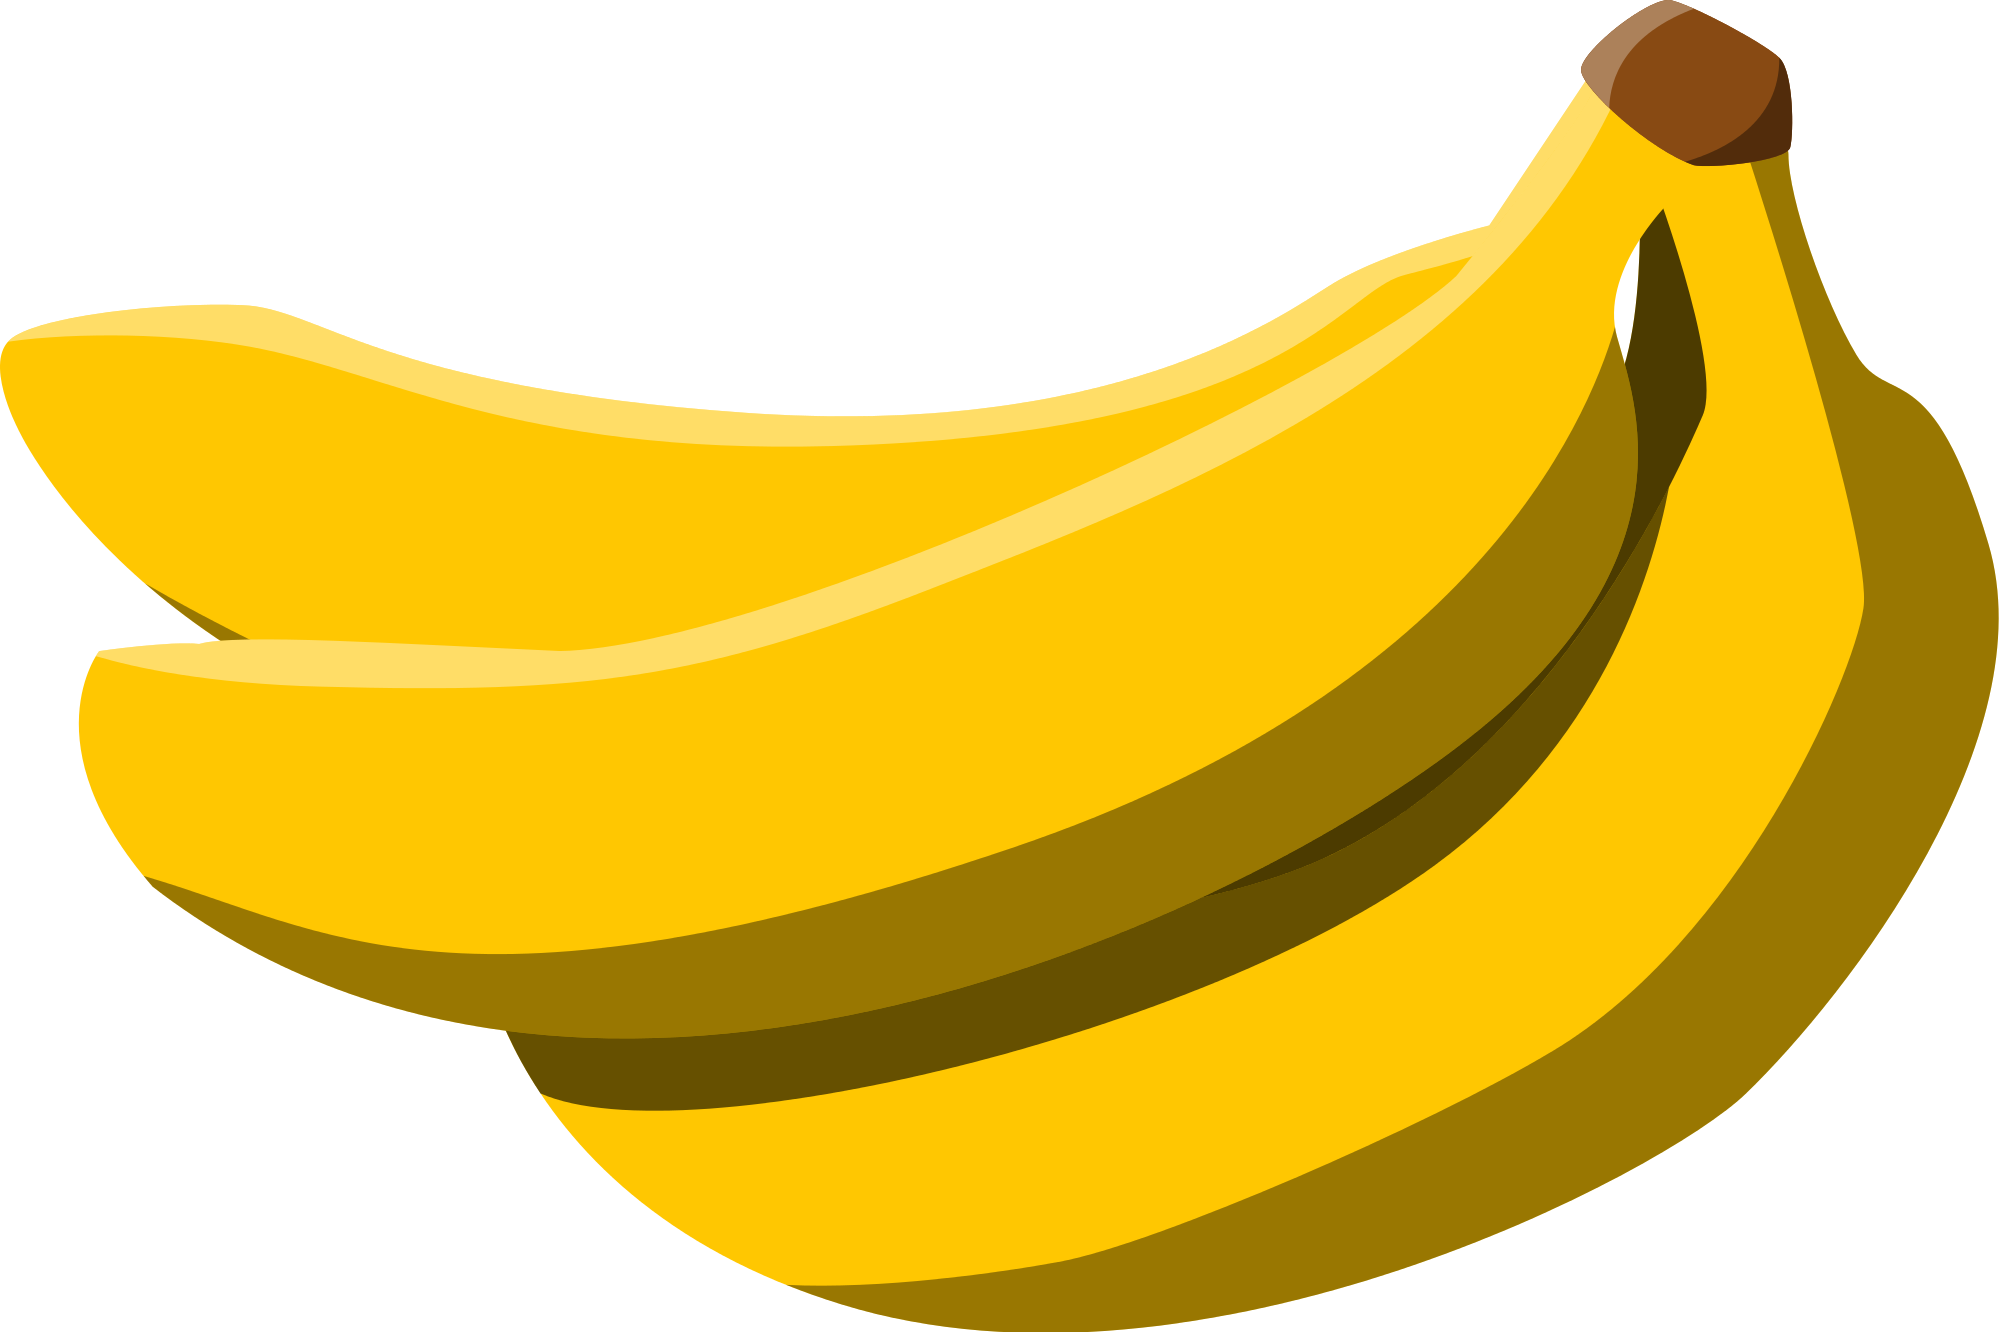 Bananas png. File svg wikimedia commons